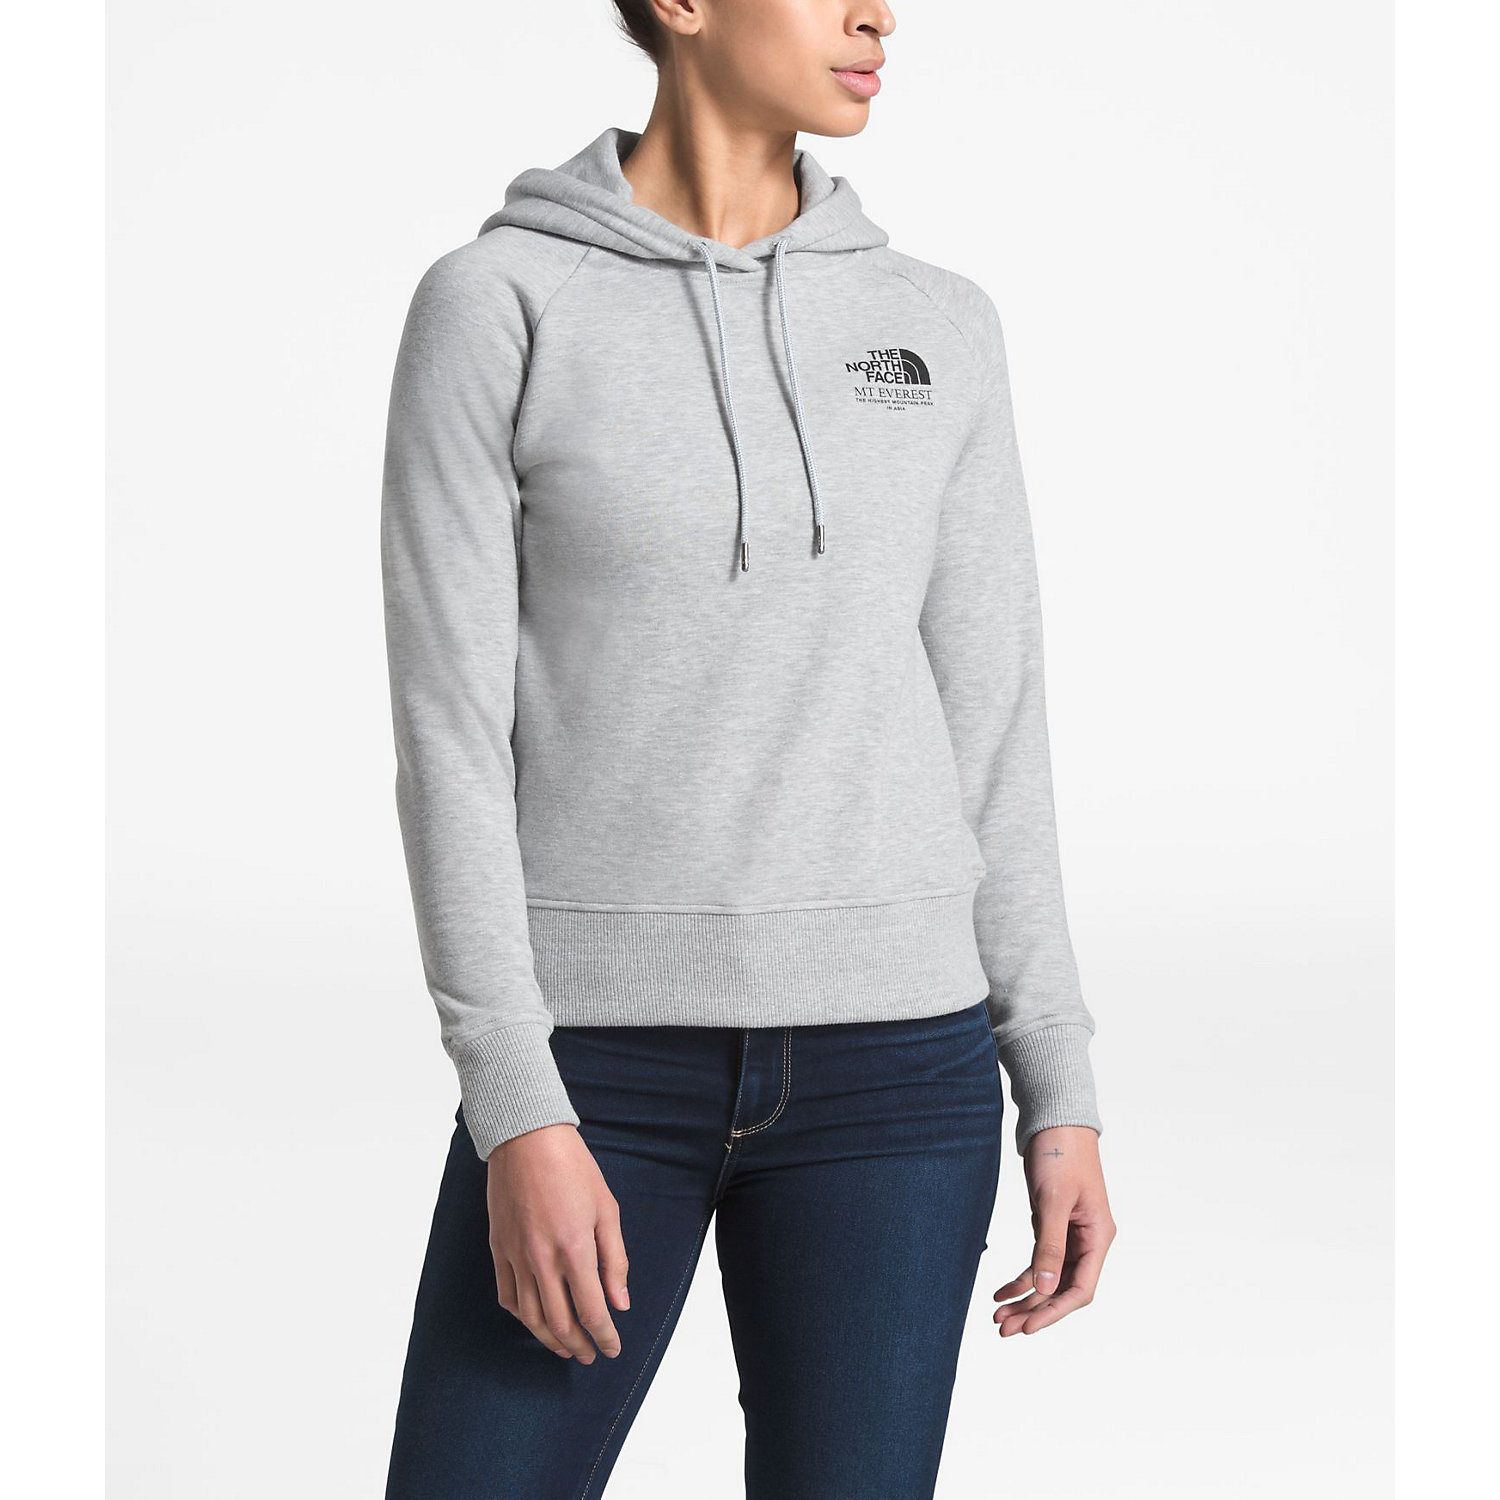 7700e3d69 The North Face Women's Highest Peaks Pullover Hoodie